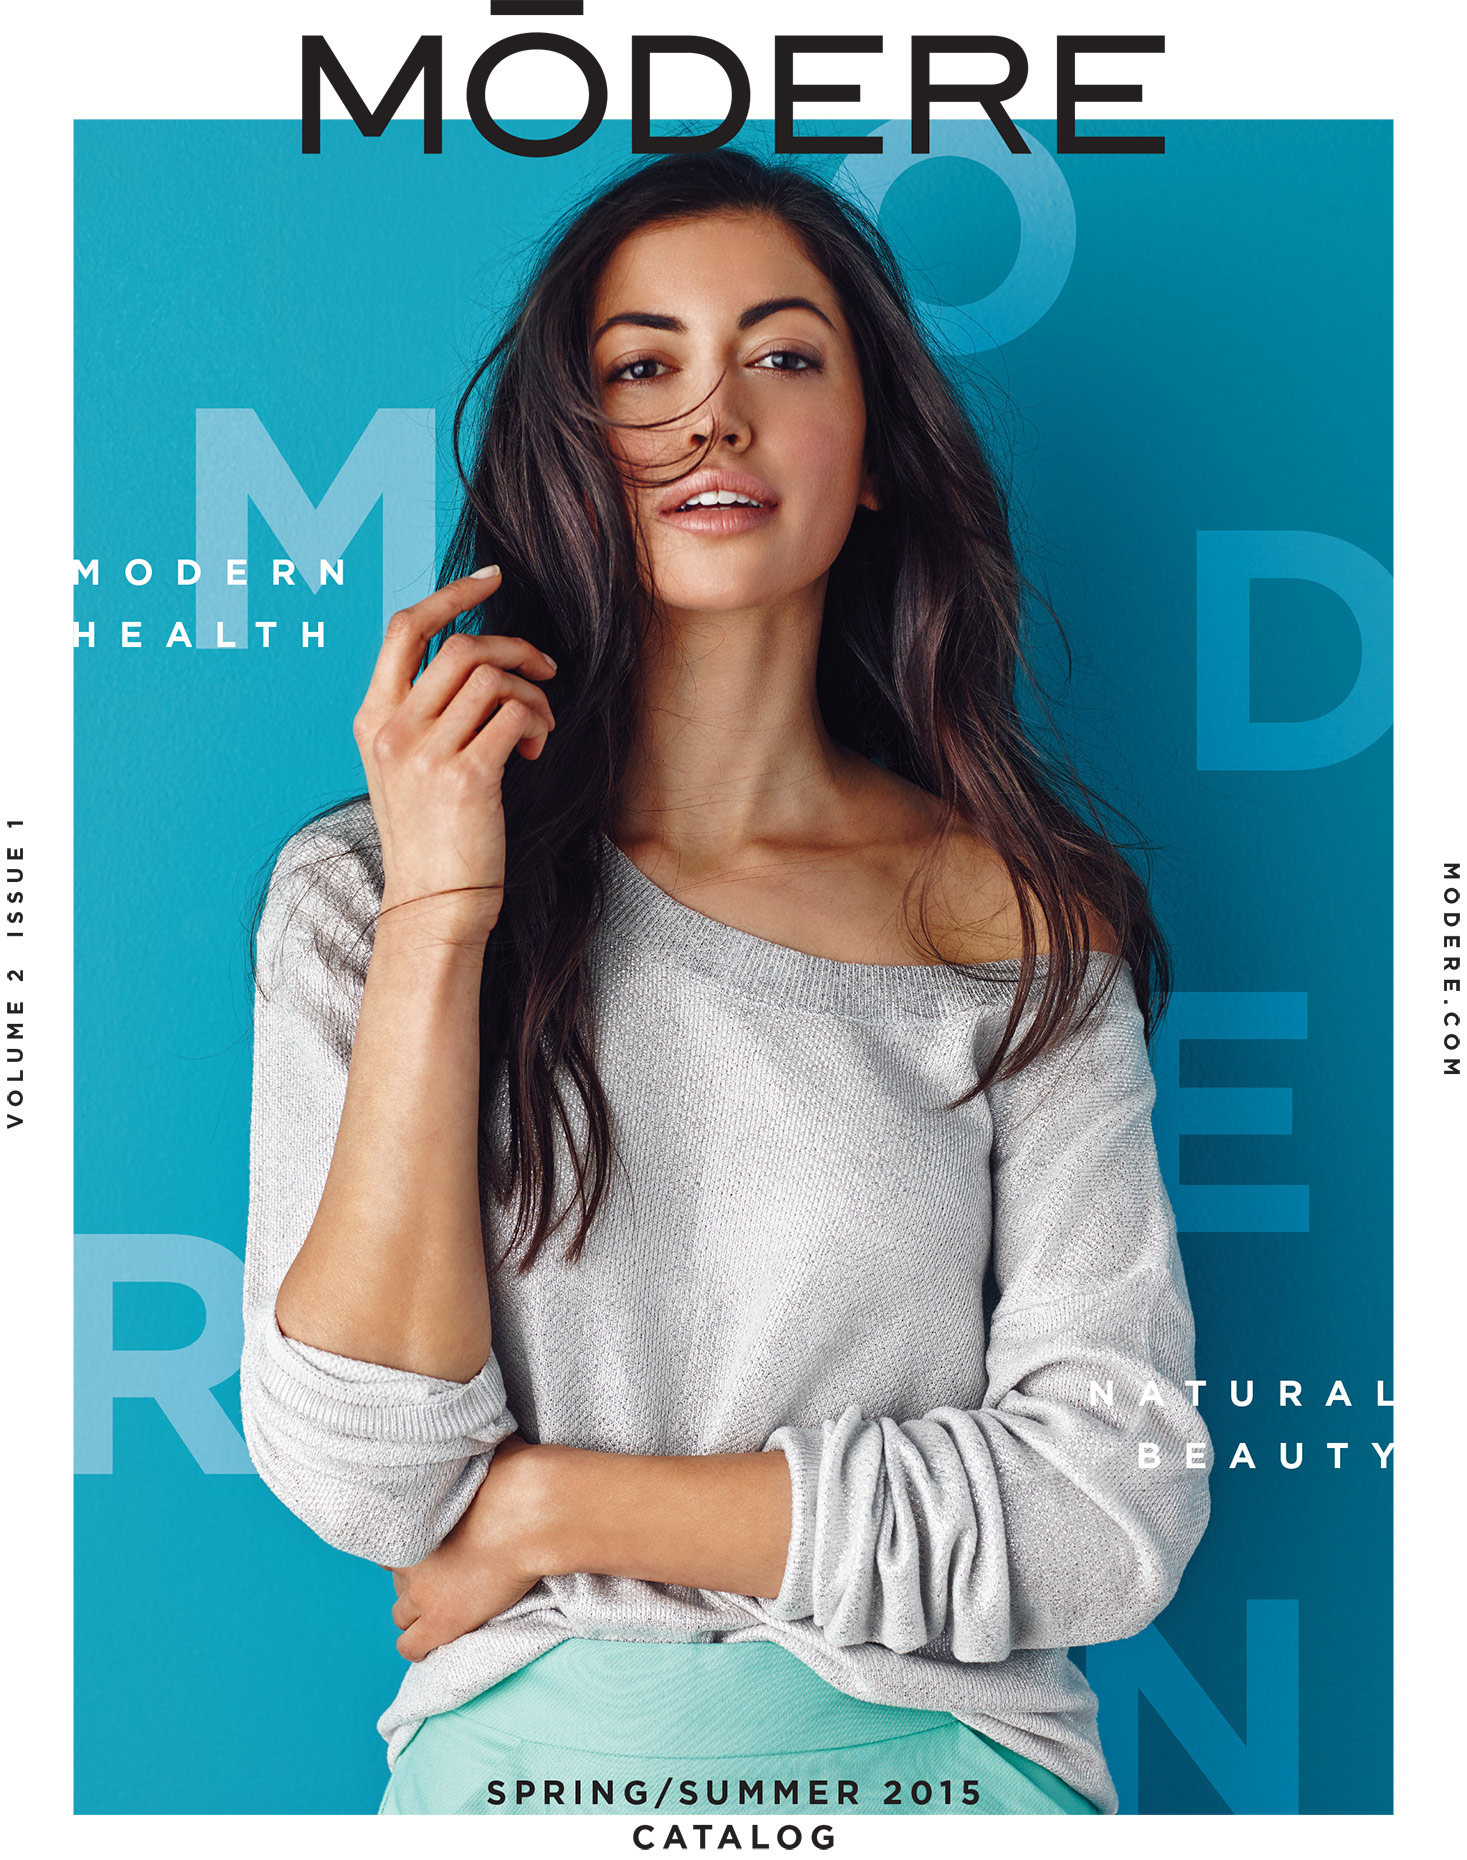 Modere_Catalog_2015_Cover